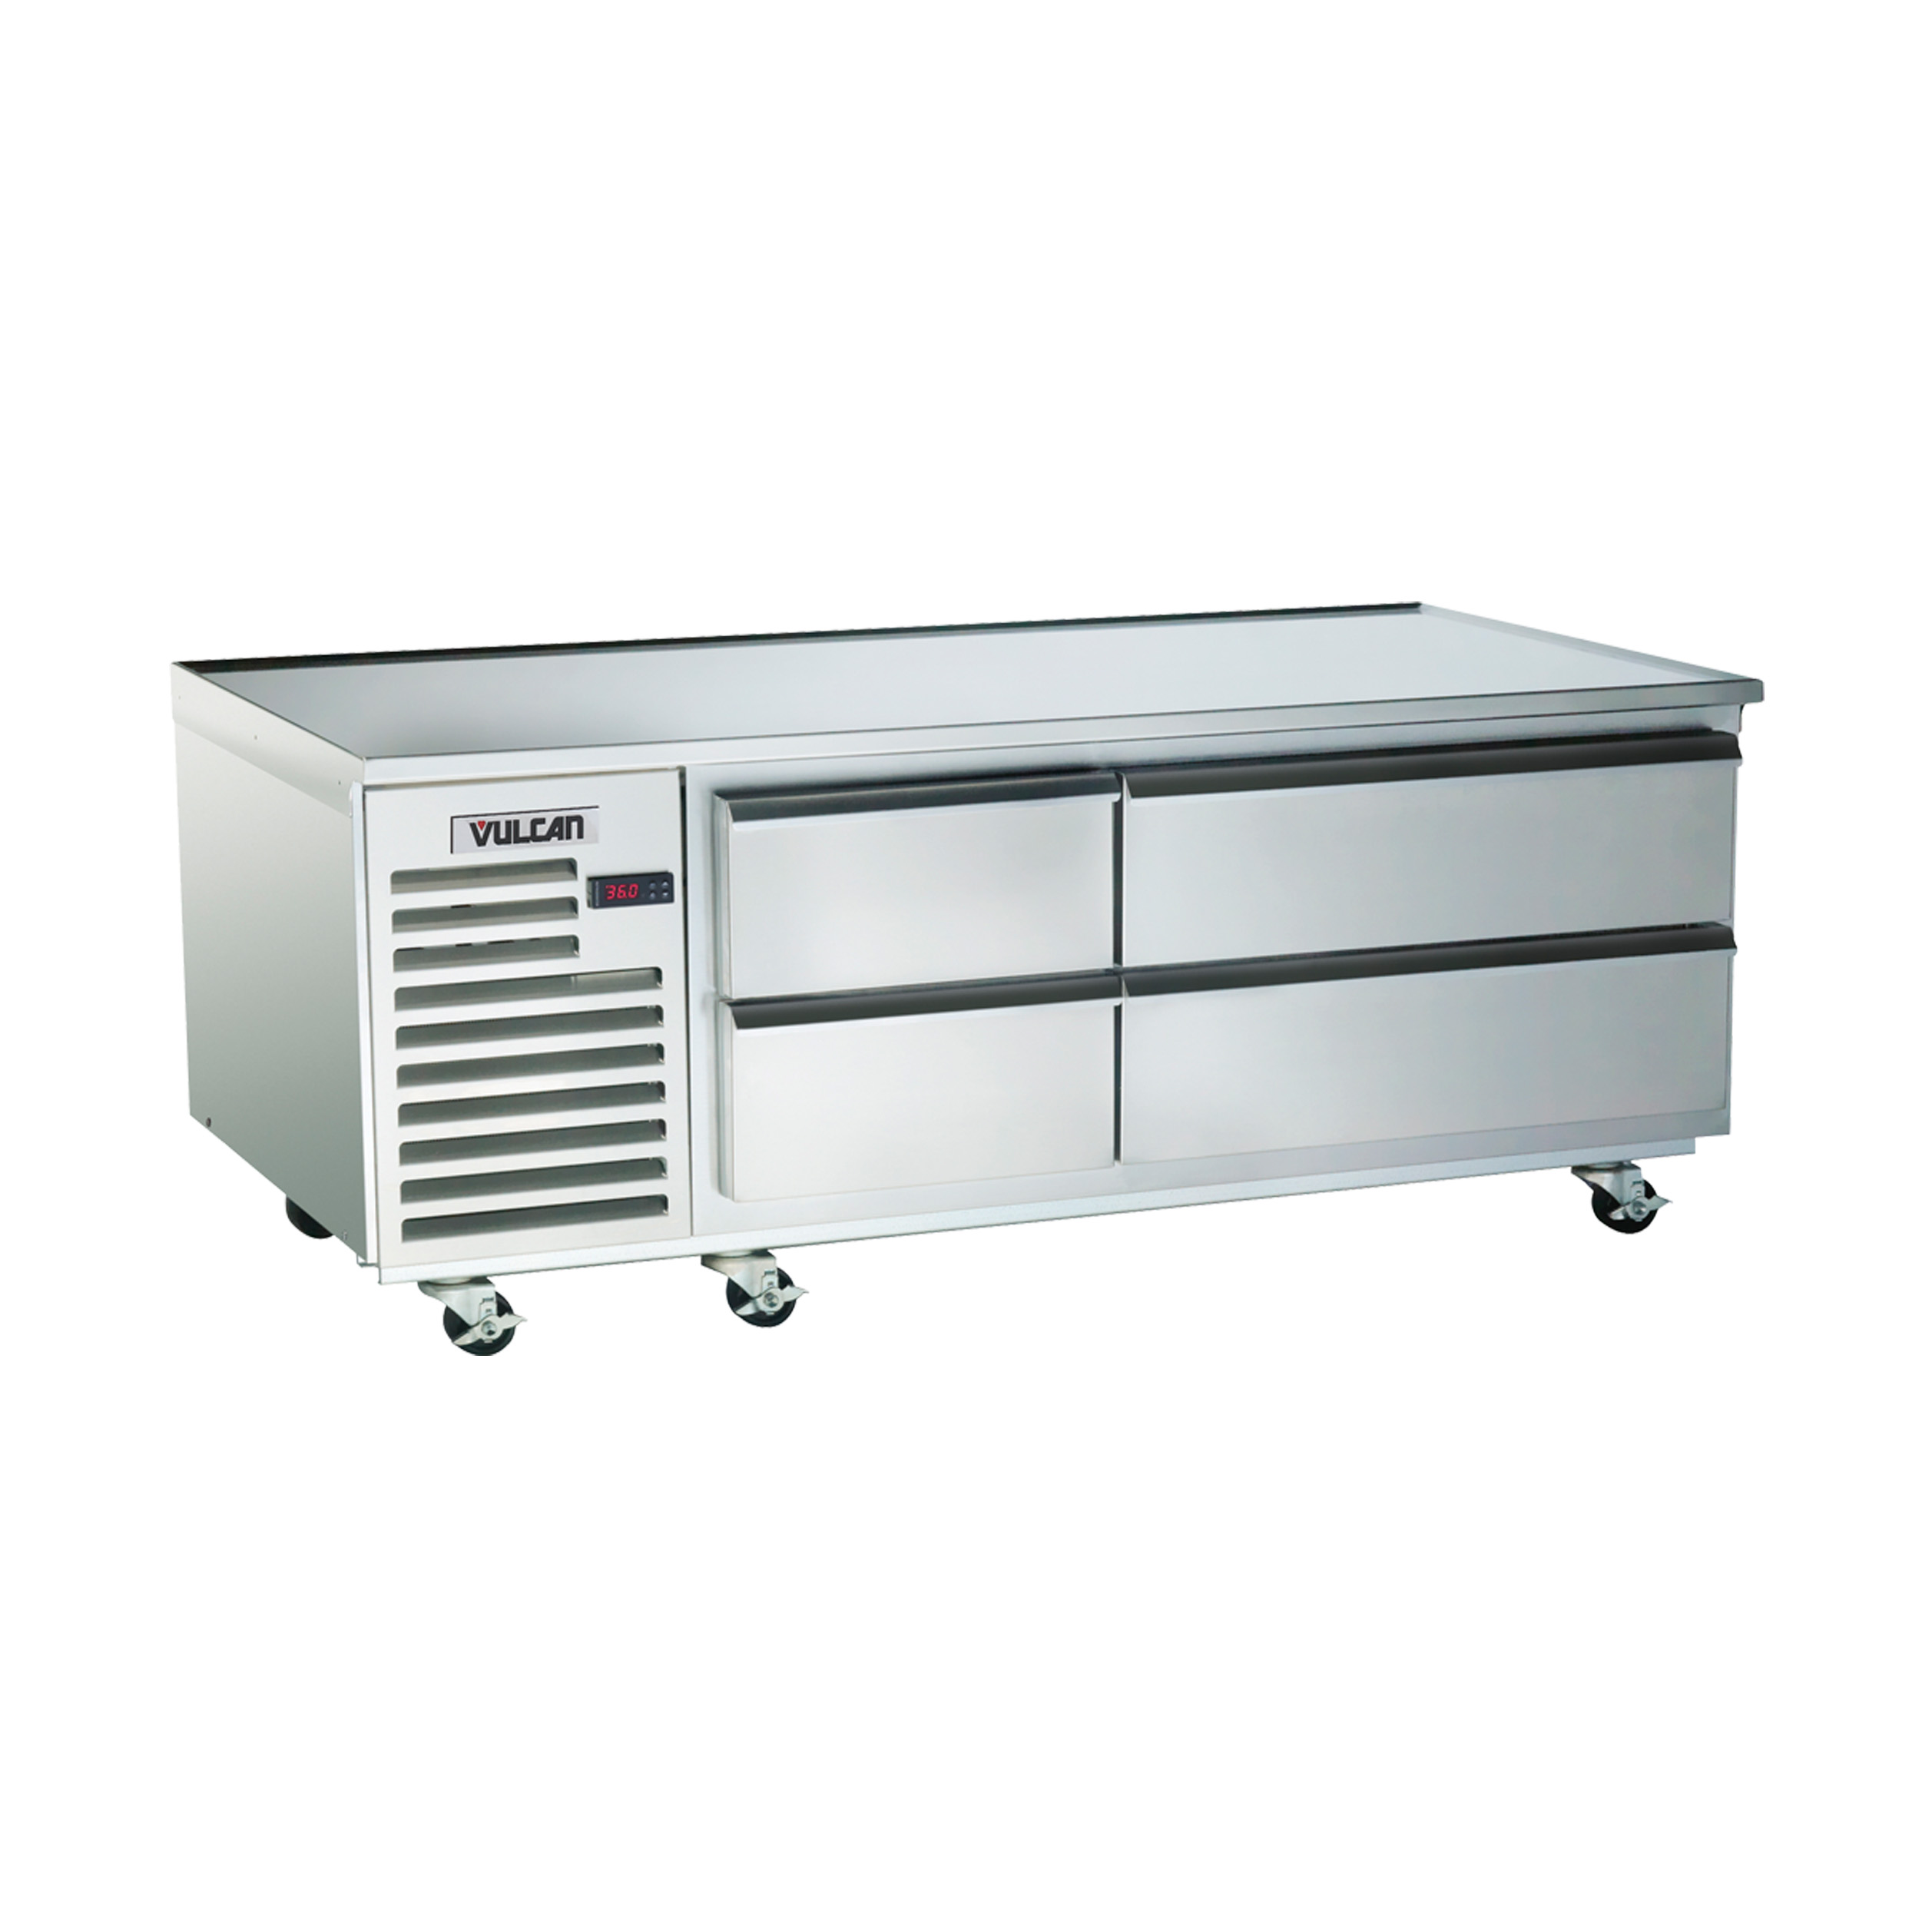 Vulcan VSC60 equipment stand, refrigerated base